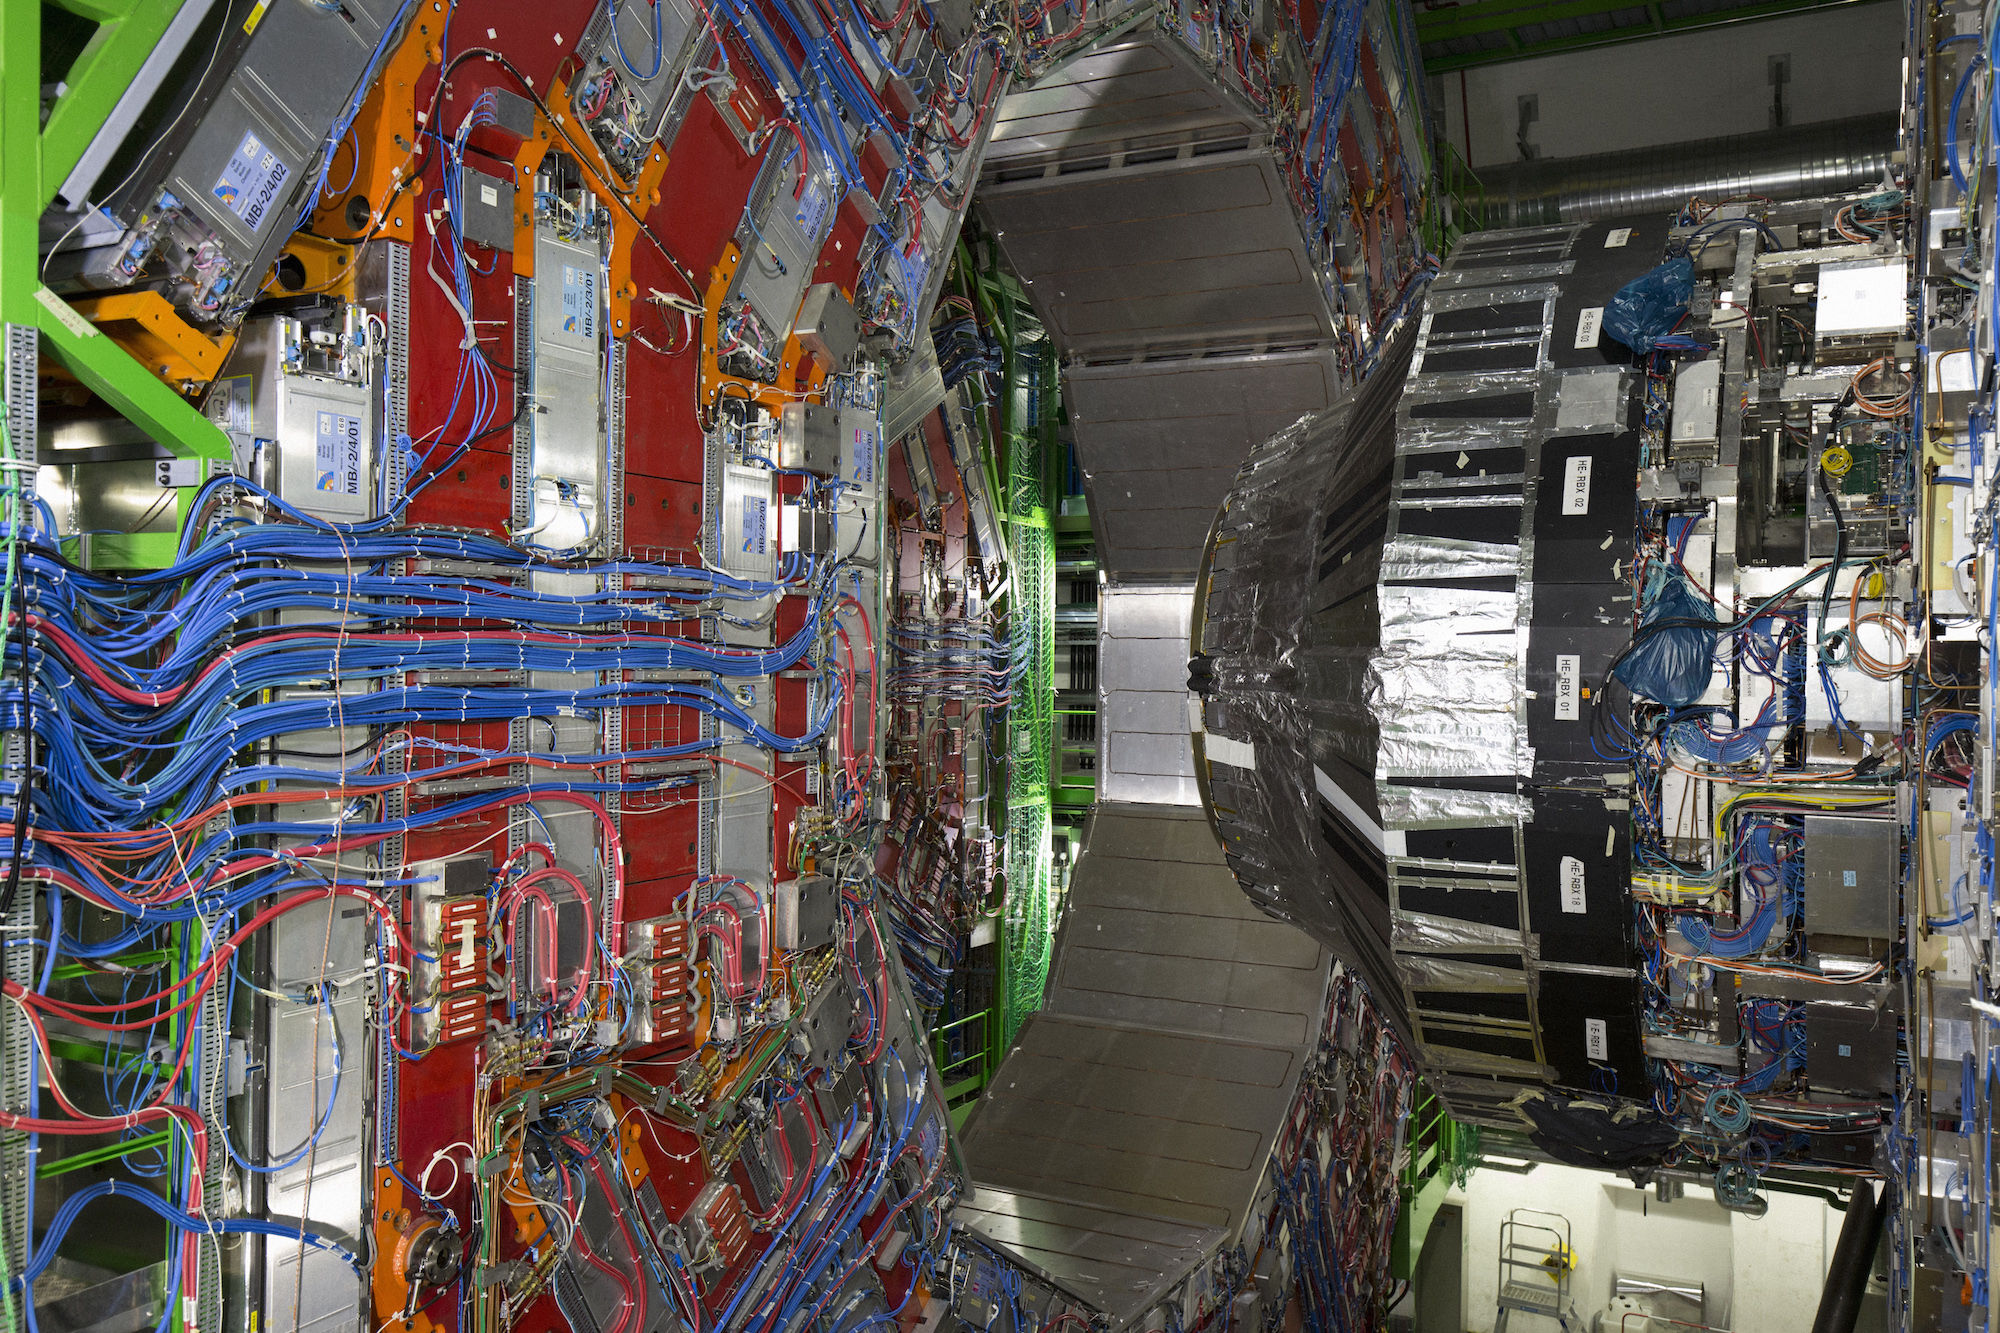 CMS at Cern photographed by Miguel Santa Clara for Elephant